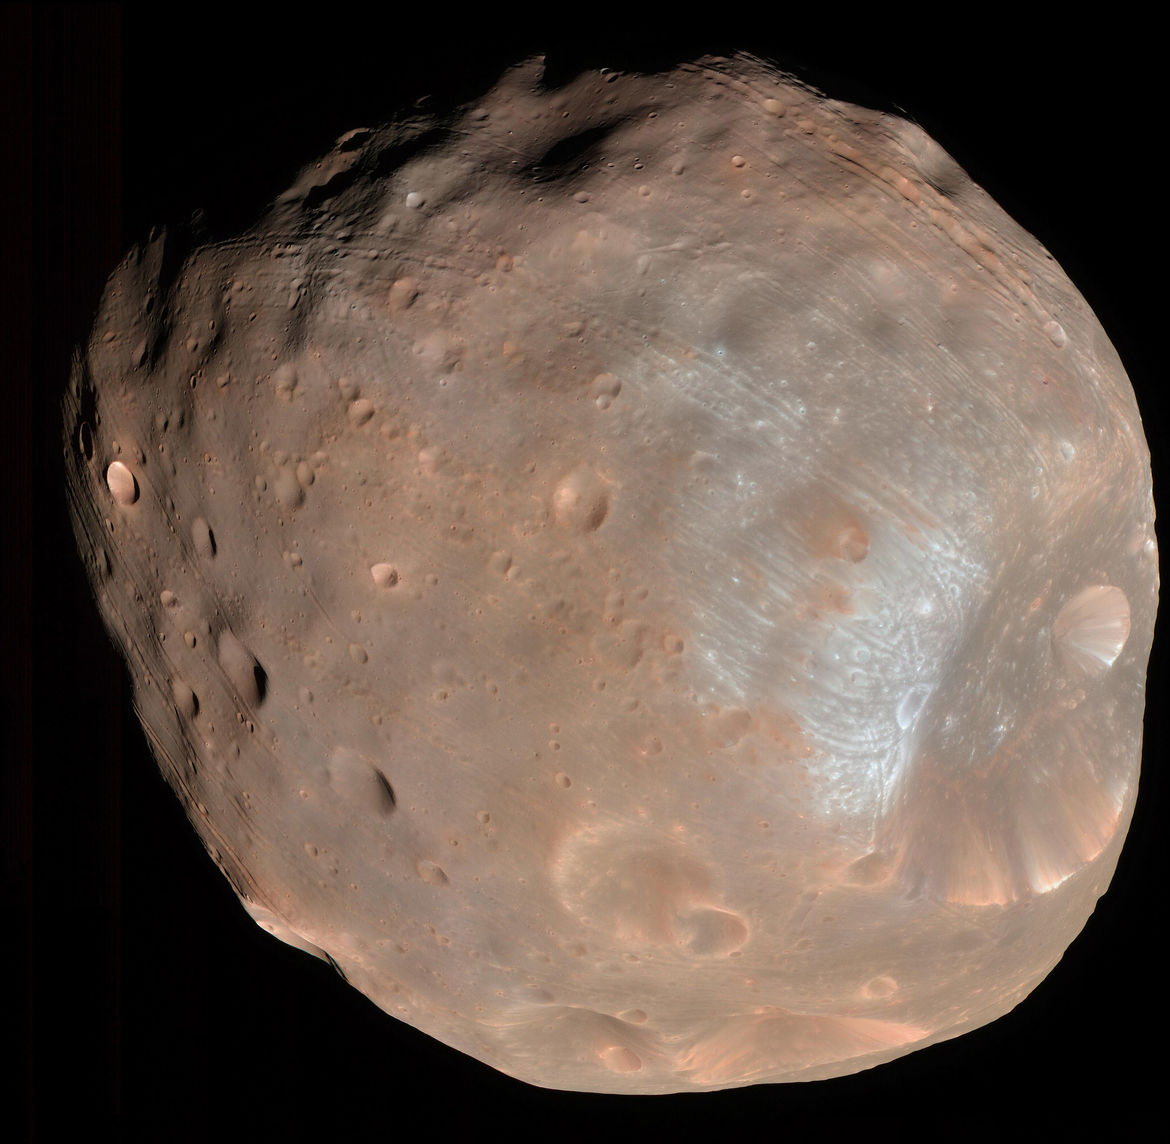 The Martian moon Phobos observed by the Mars Reconnaissance Orbiter, showing the giant crater Stickney and odd grooves covering its surface. Credit: NASA/JPL-Caltech/University of Arizona